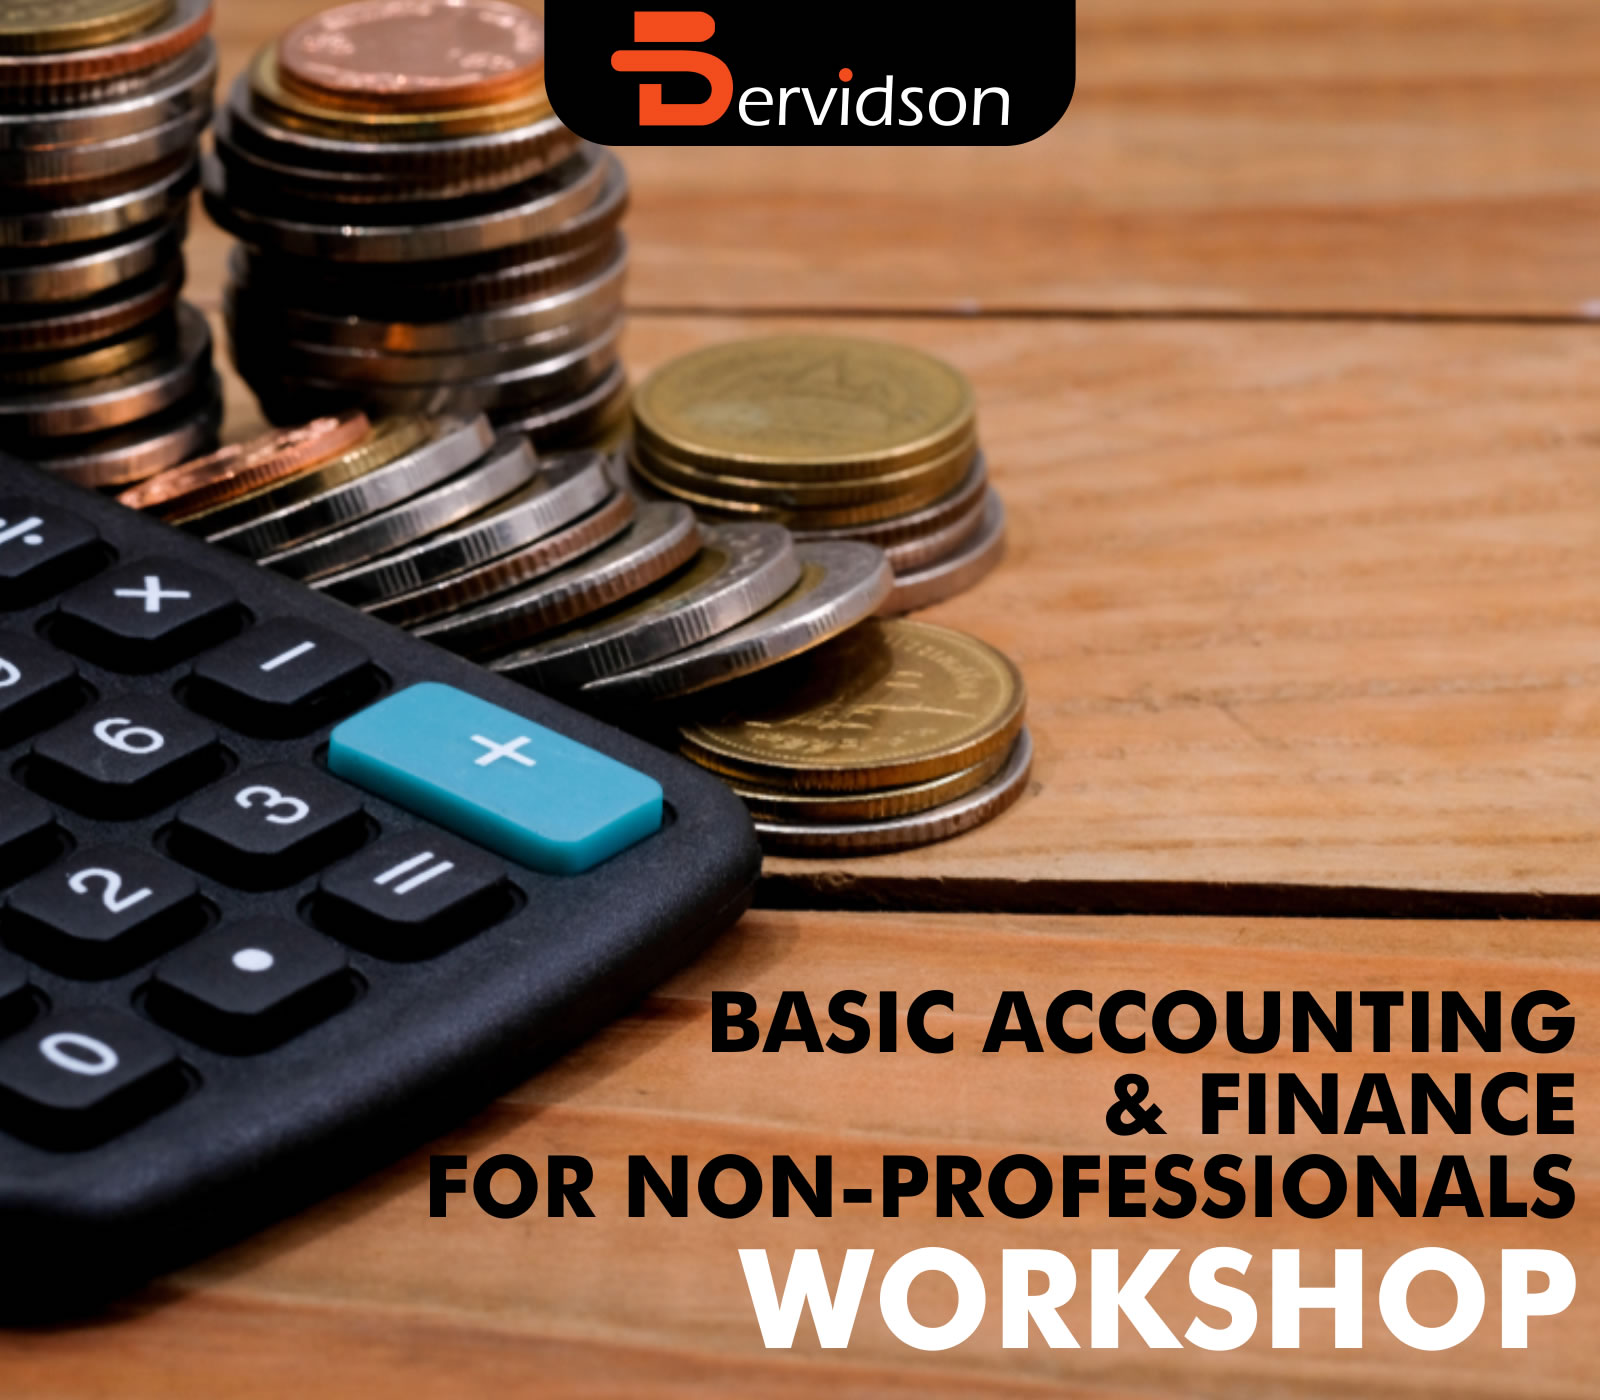 Basic Accounting & Finance for Non-Professionals Workshop